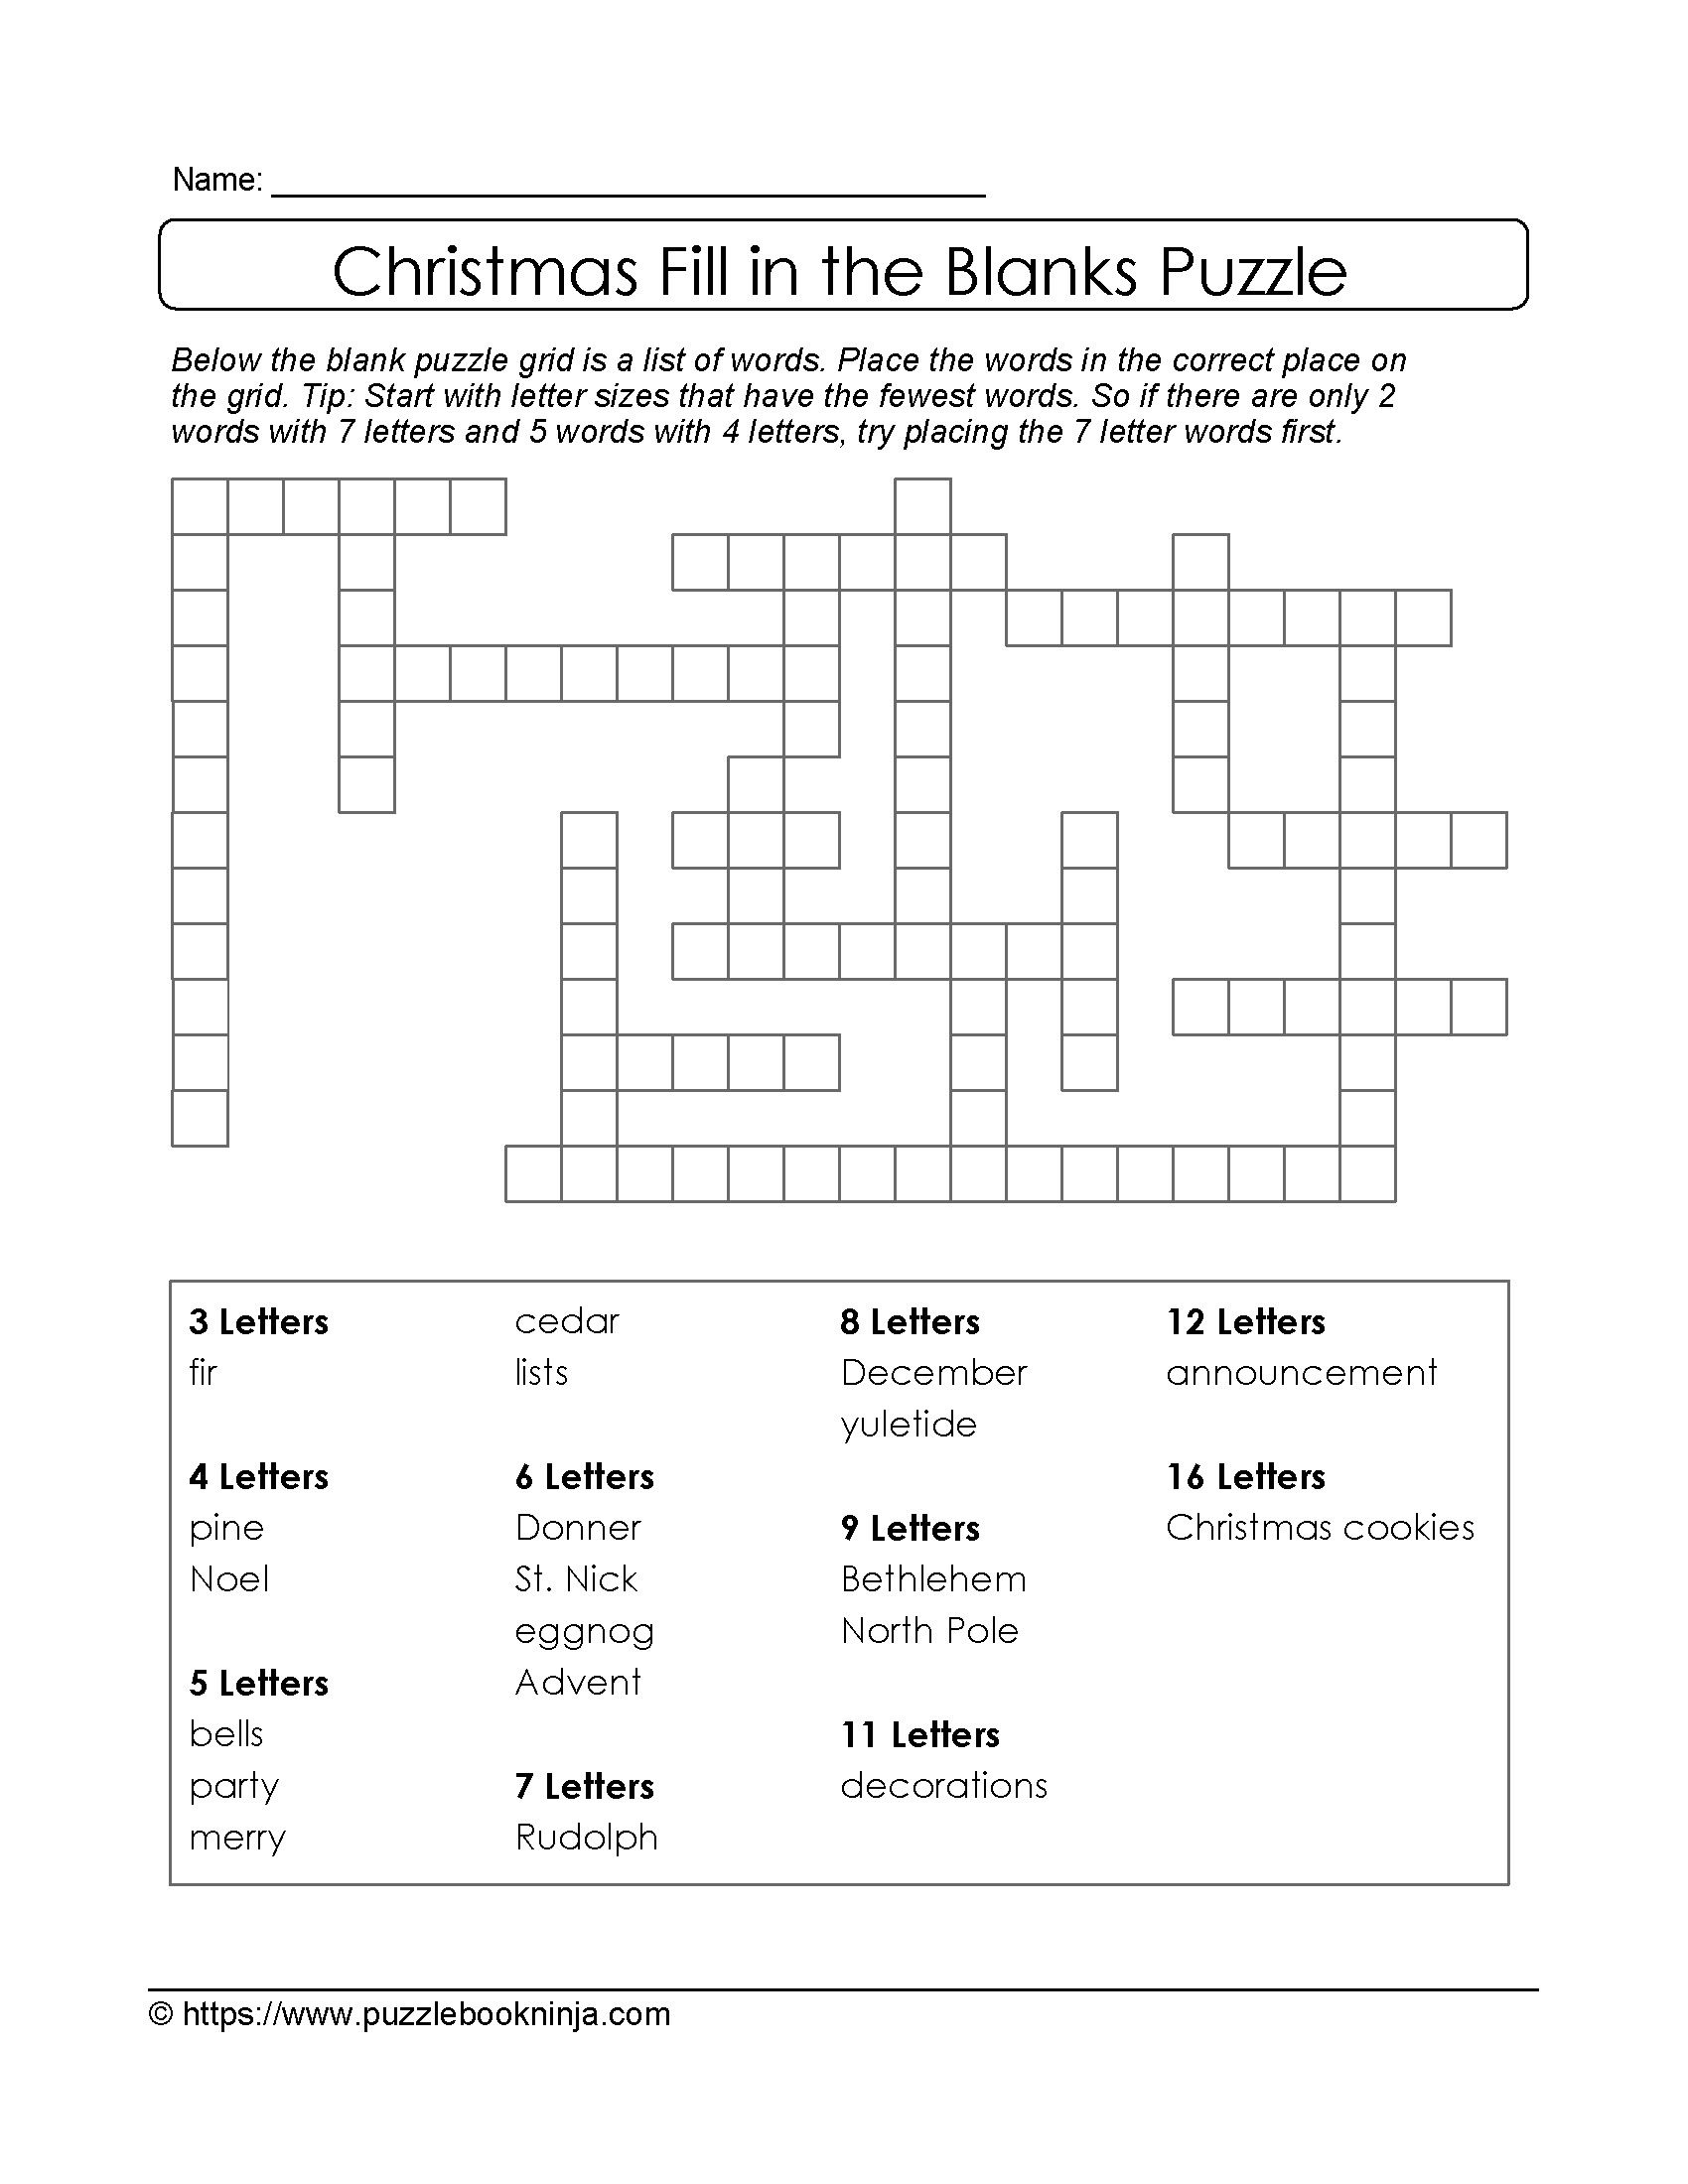 Christmas Printable Puzzle. Free Fill In The Blanks. | Christmas - Free Printable Christmas Puzzles